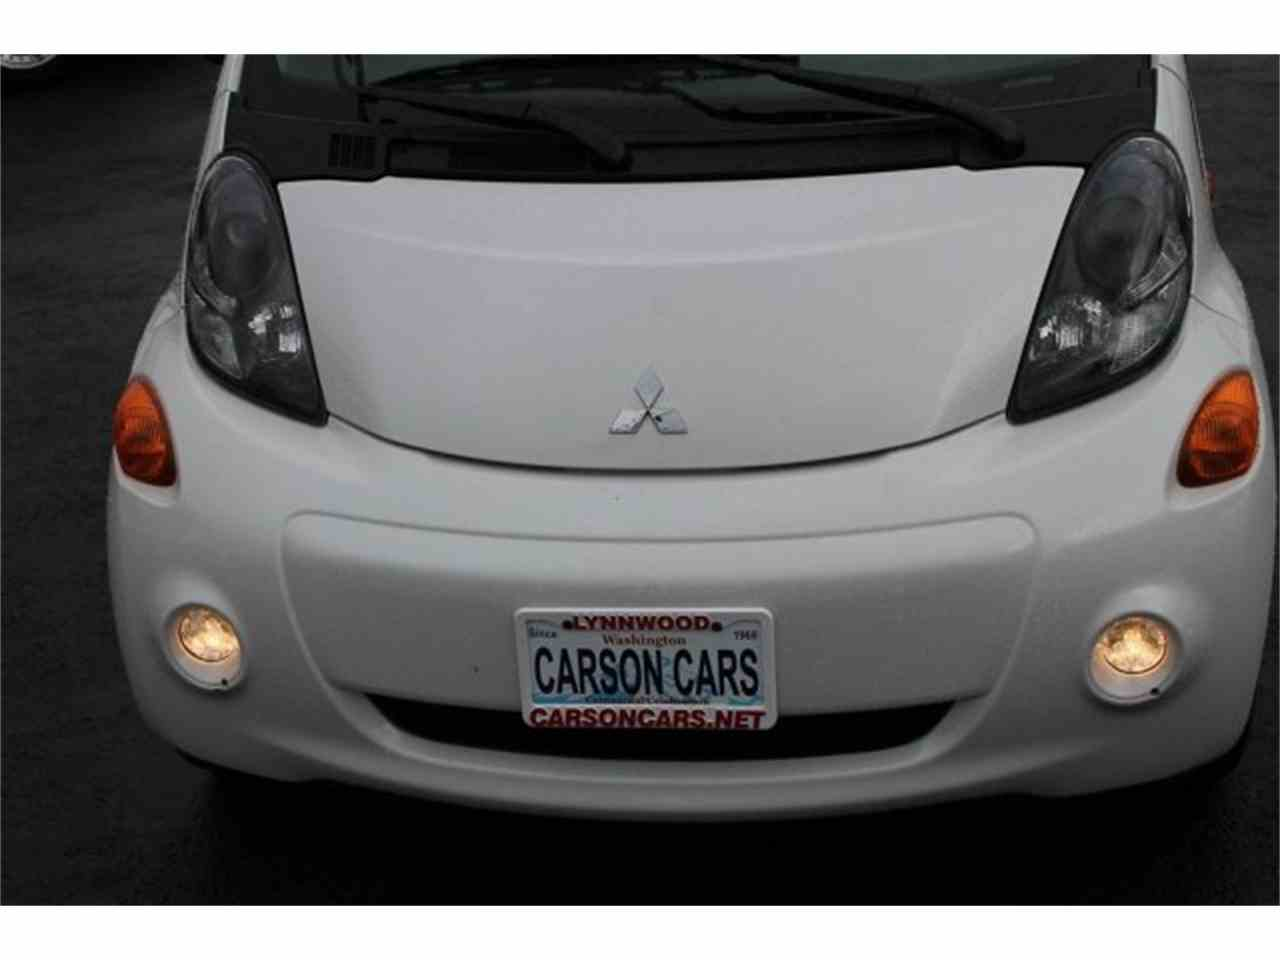 Large Picture of '14 Mitsubishi i-MiEV located in Washington - $9,995.00 - JJJG